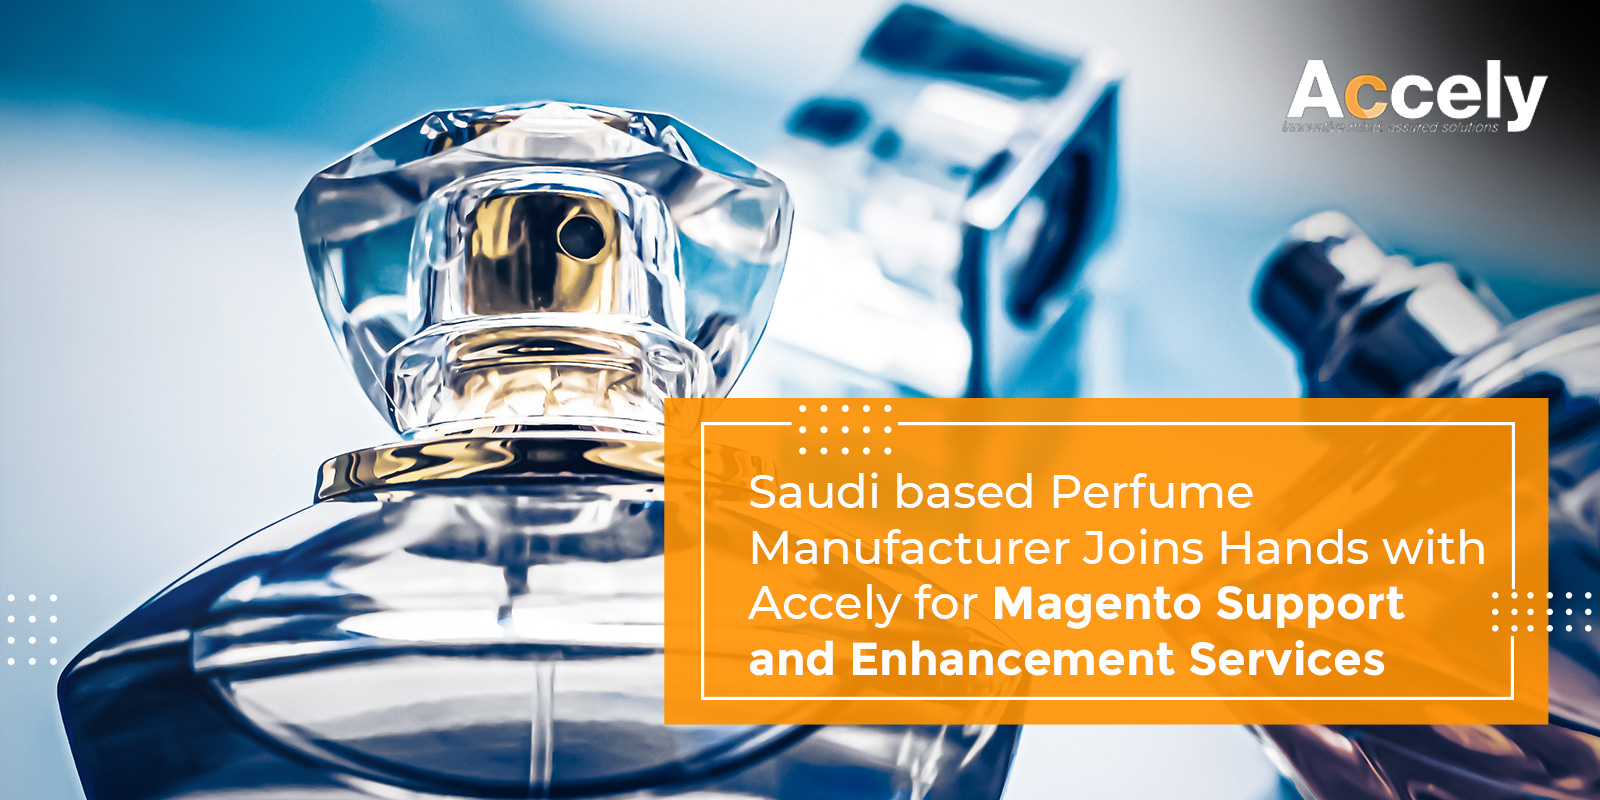 Saudi based Perfume Manufacturer Joins Hands with Accely for Magento Support and Enhancement Services